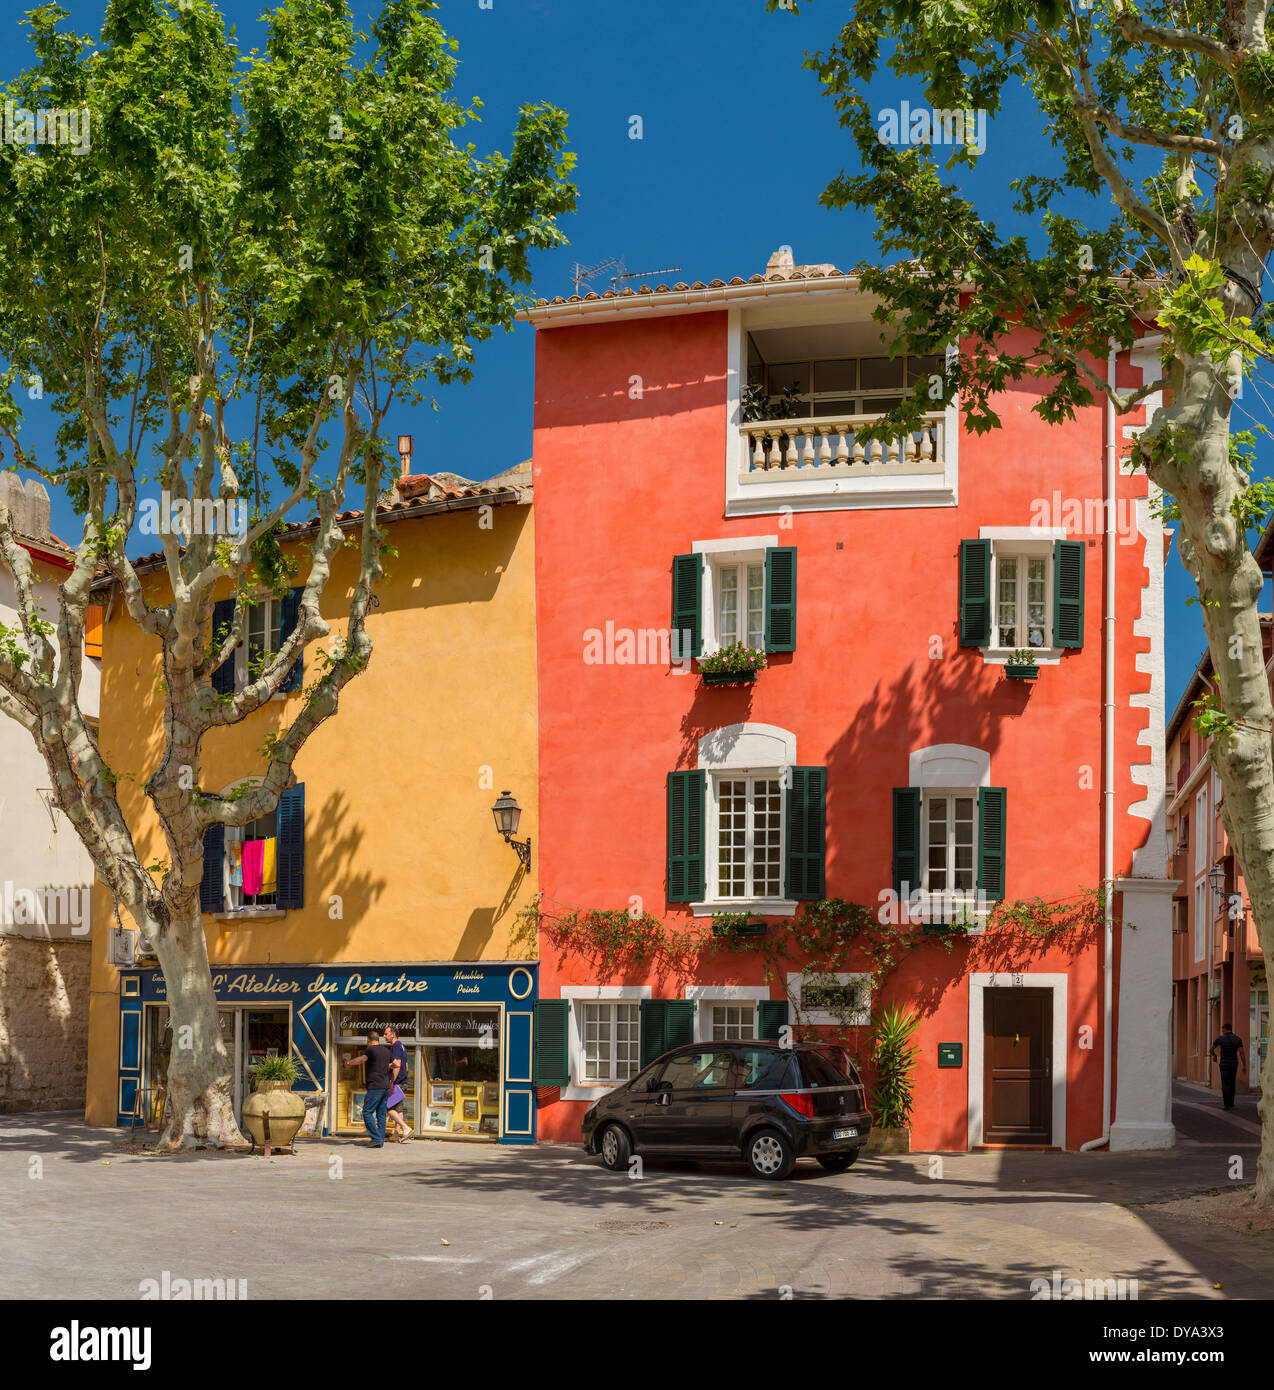 Rue Jeannin, town, village, forest, wood, trees, summer, people, Martique, Bouches du Rhone, France, Europe, - Stock Image